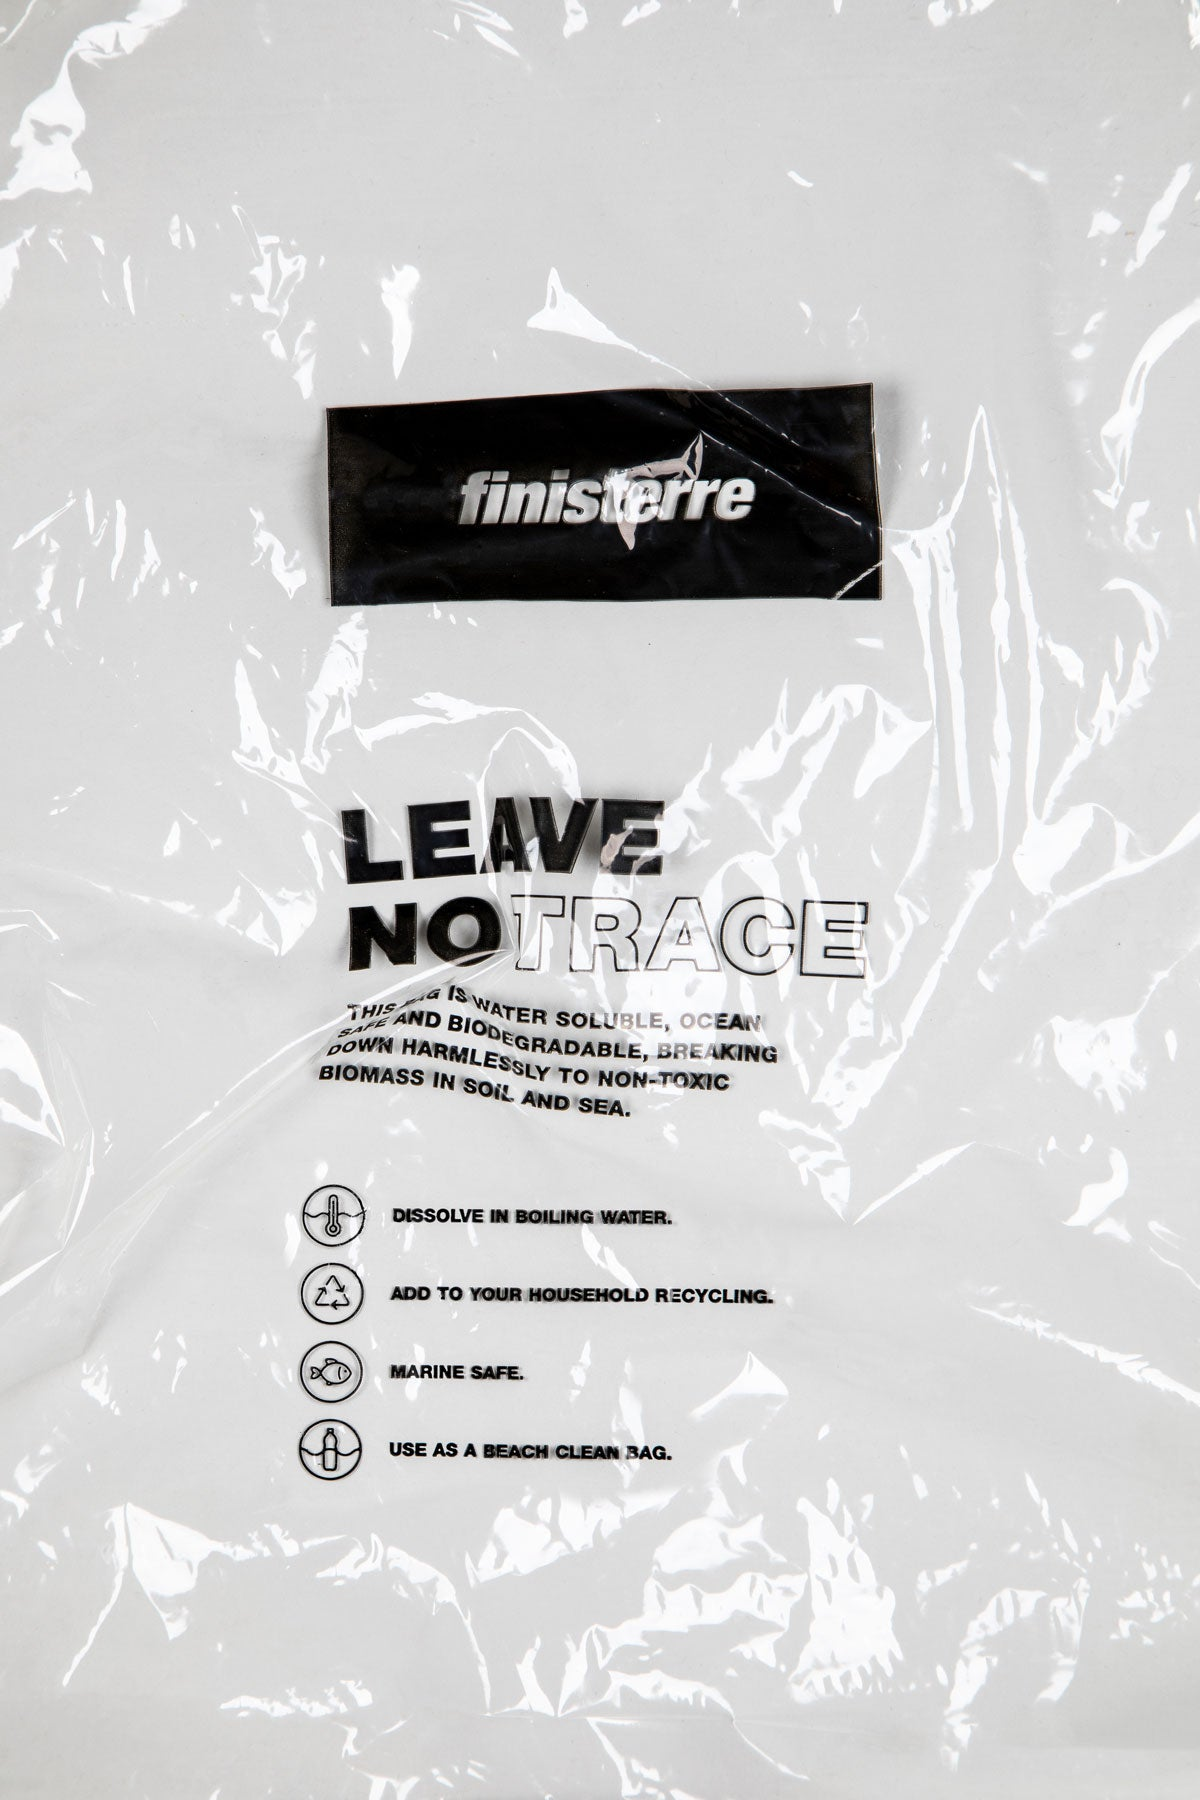 Leave No Trace Bag - Marine safe, degradable, recyclable.